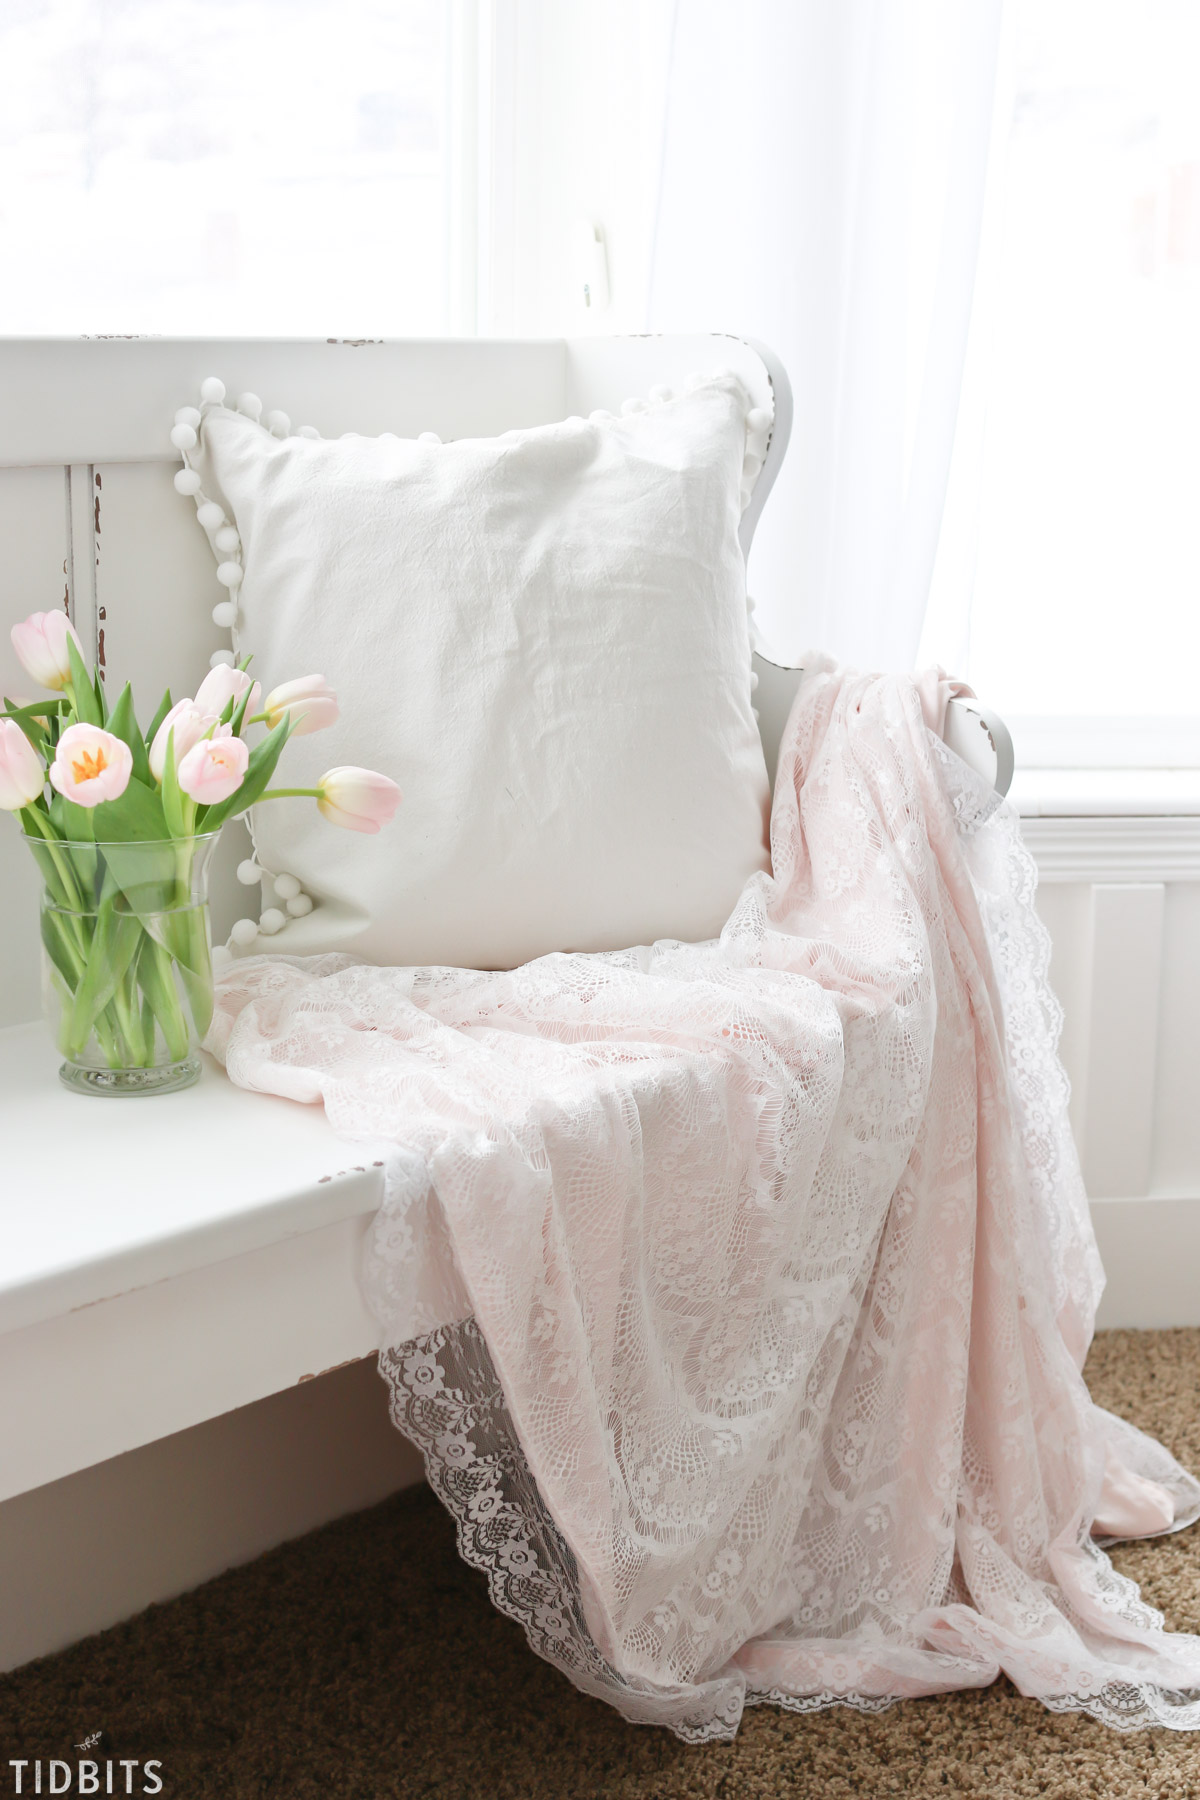 DIY Valentines Lace Throw Blanket - romantic luxury at its best!